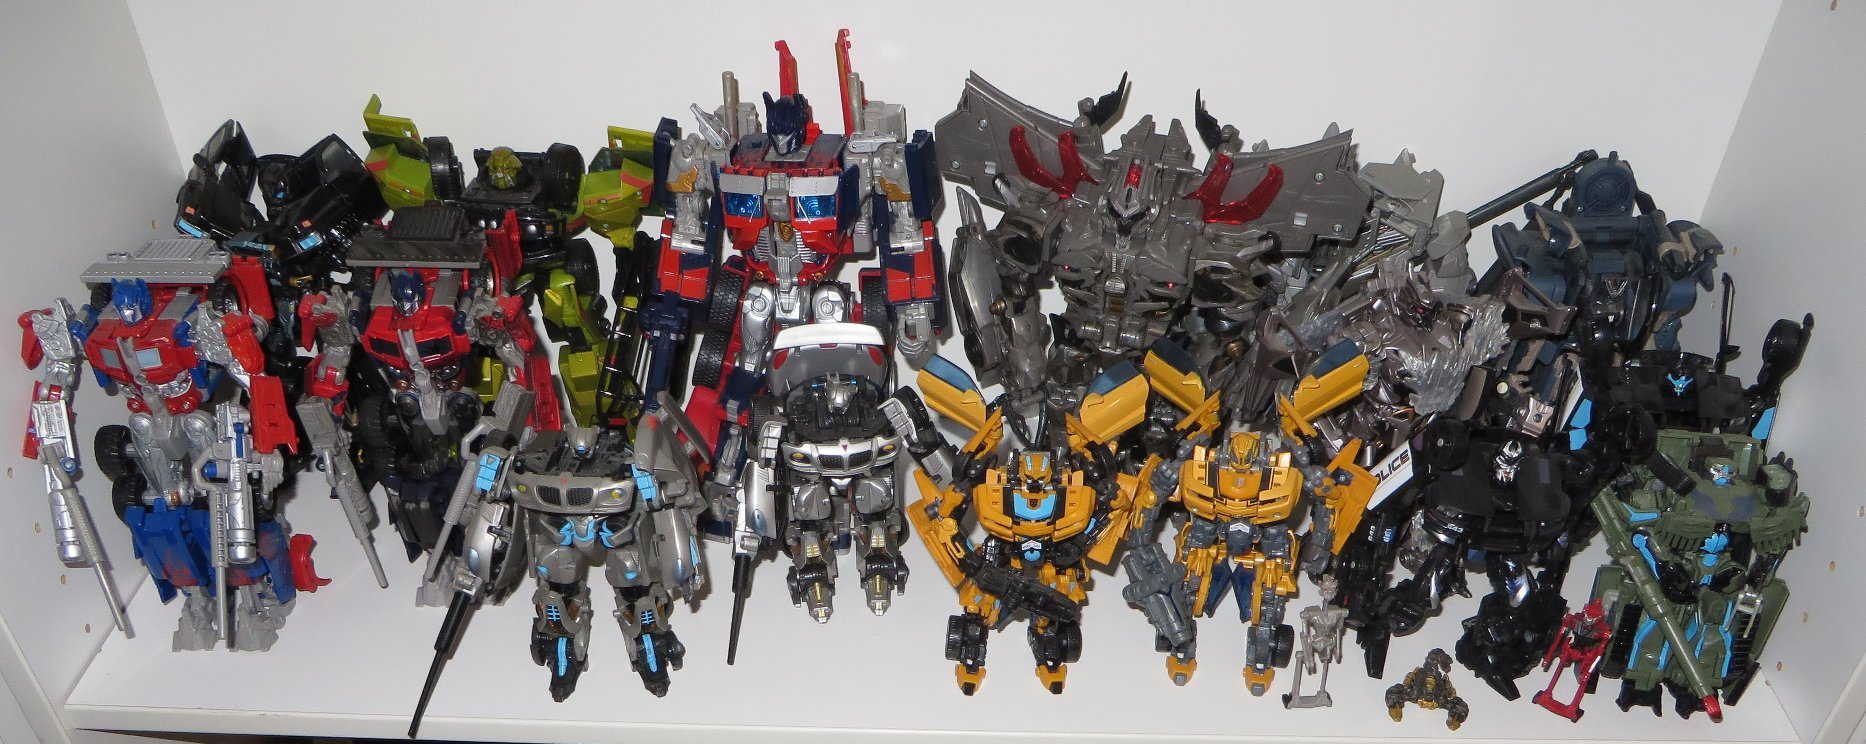 Griffins Transformers Collection